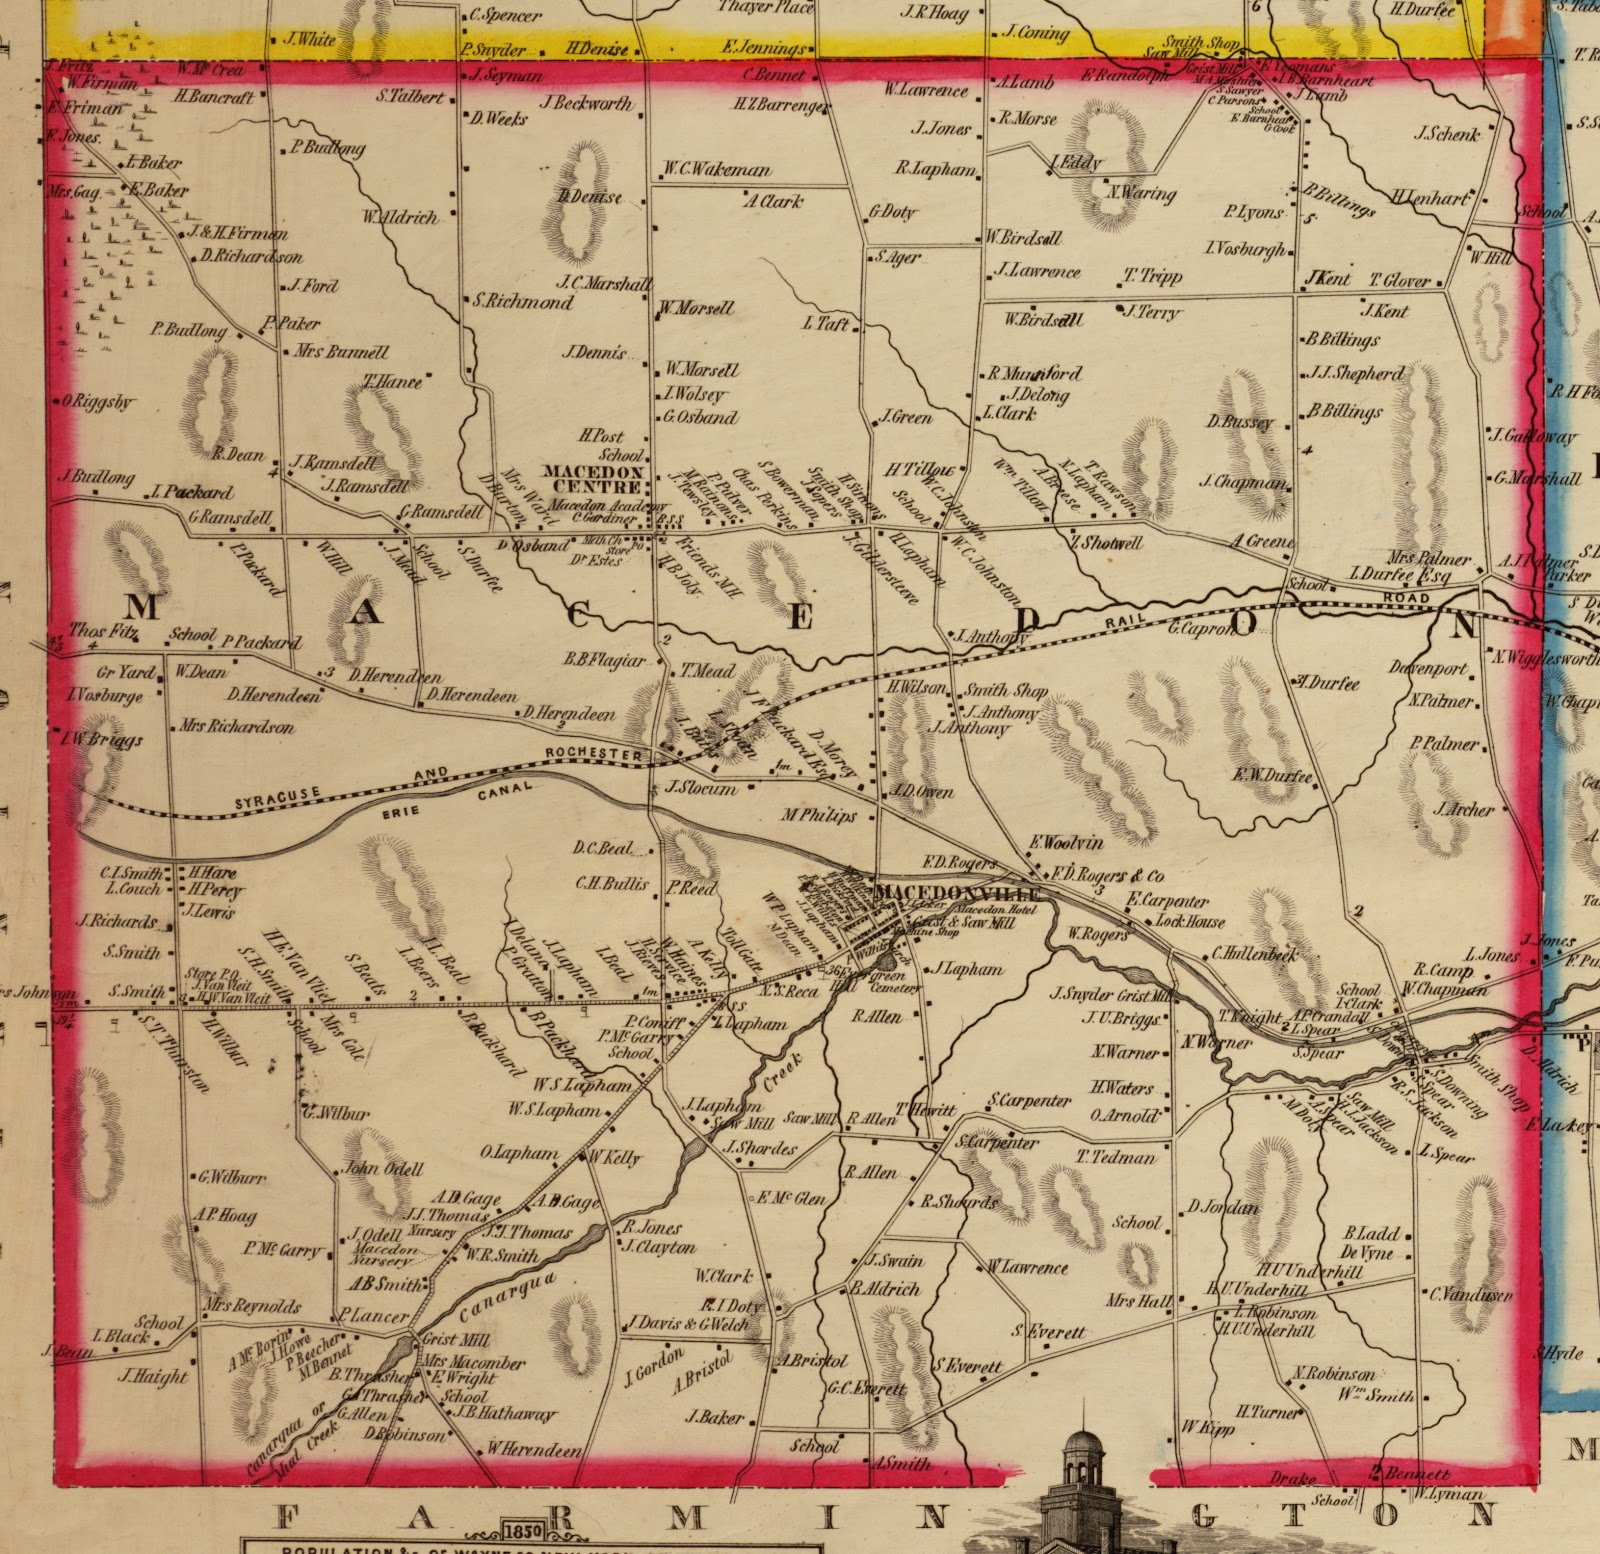 1853 H. F. Walling, wall map of Wayne County, N. Y.; Library of Congress, Geography and Map Division copy